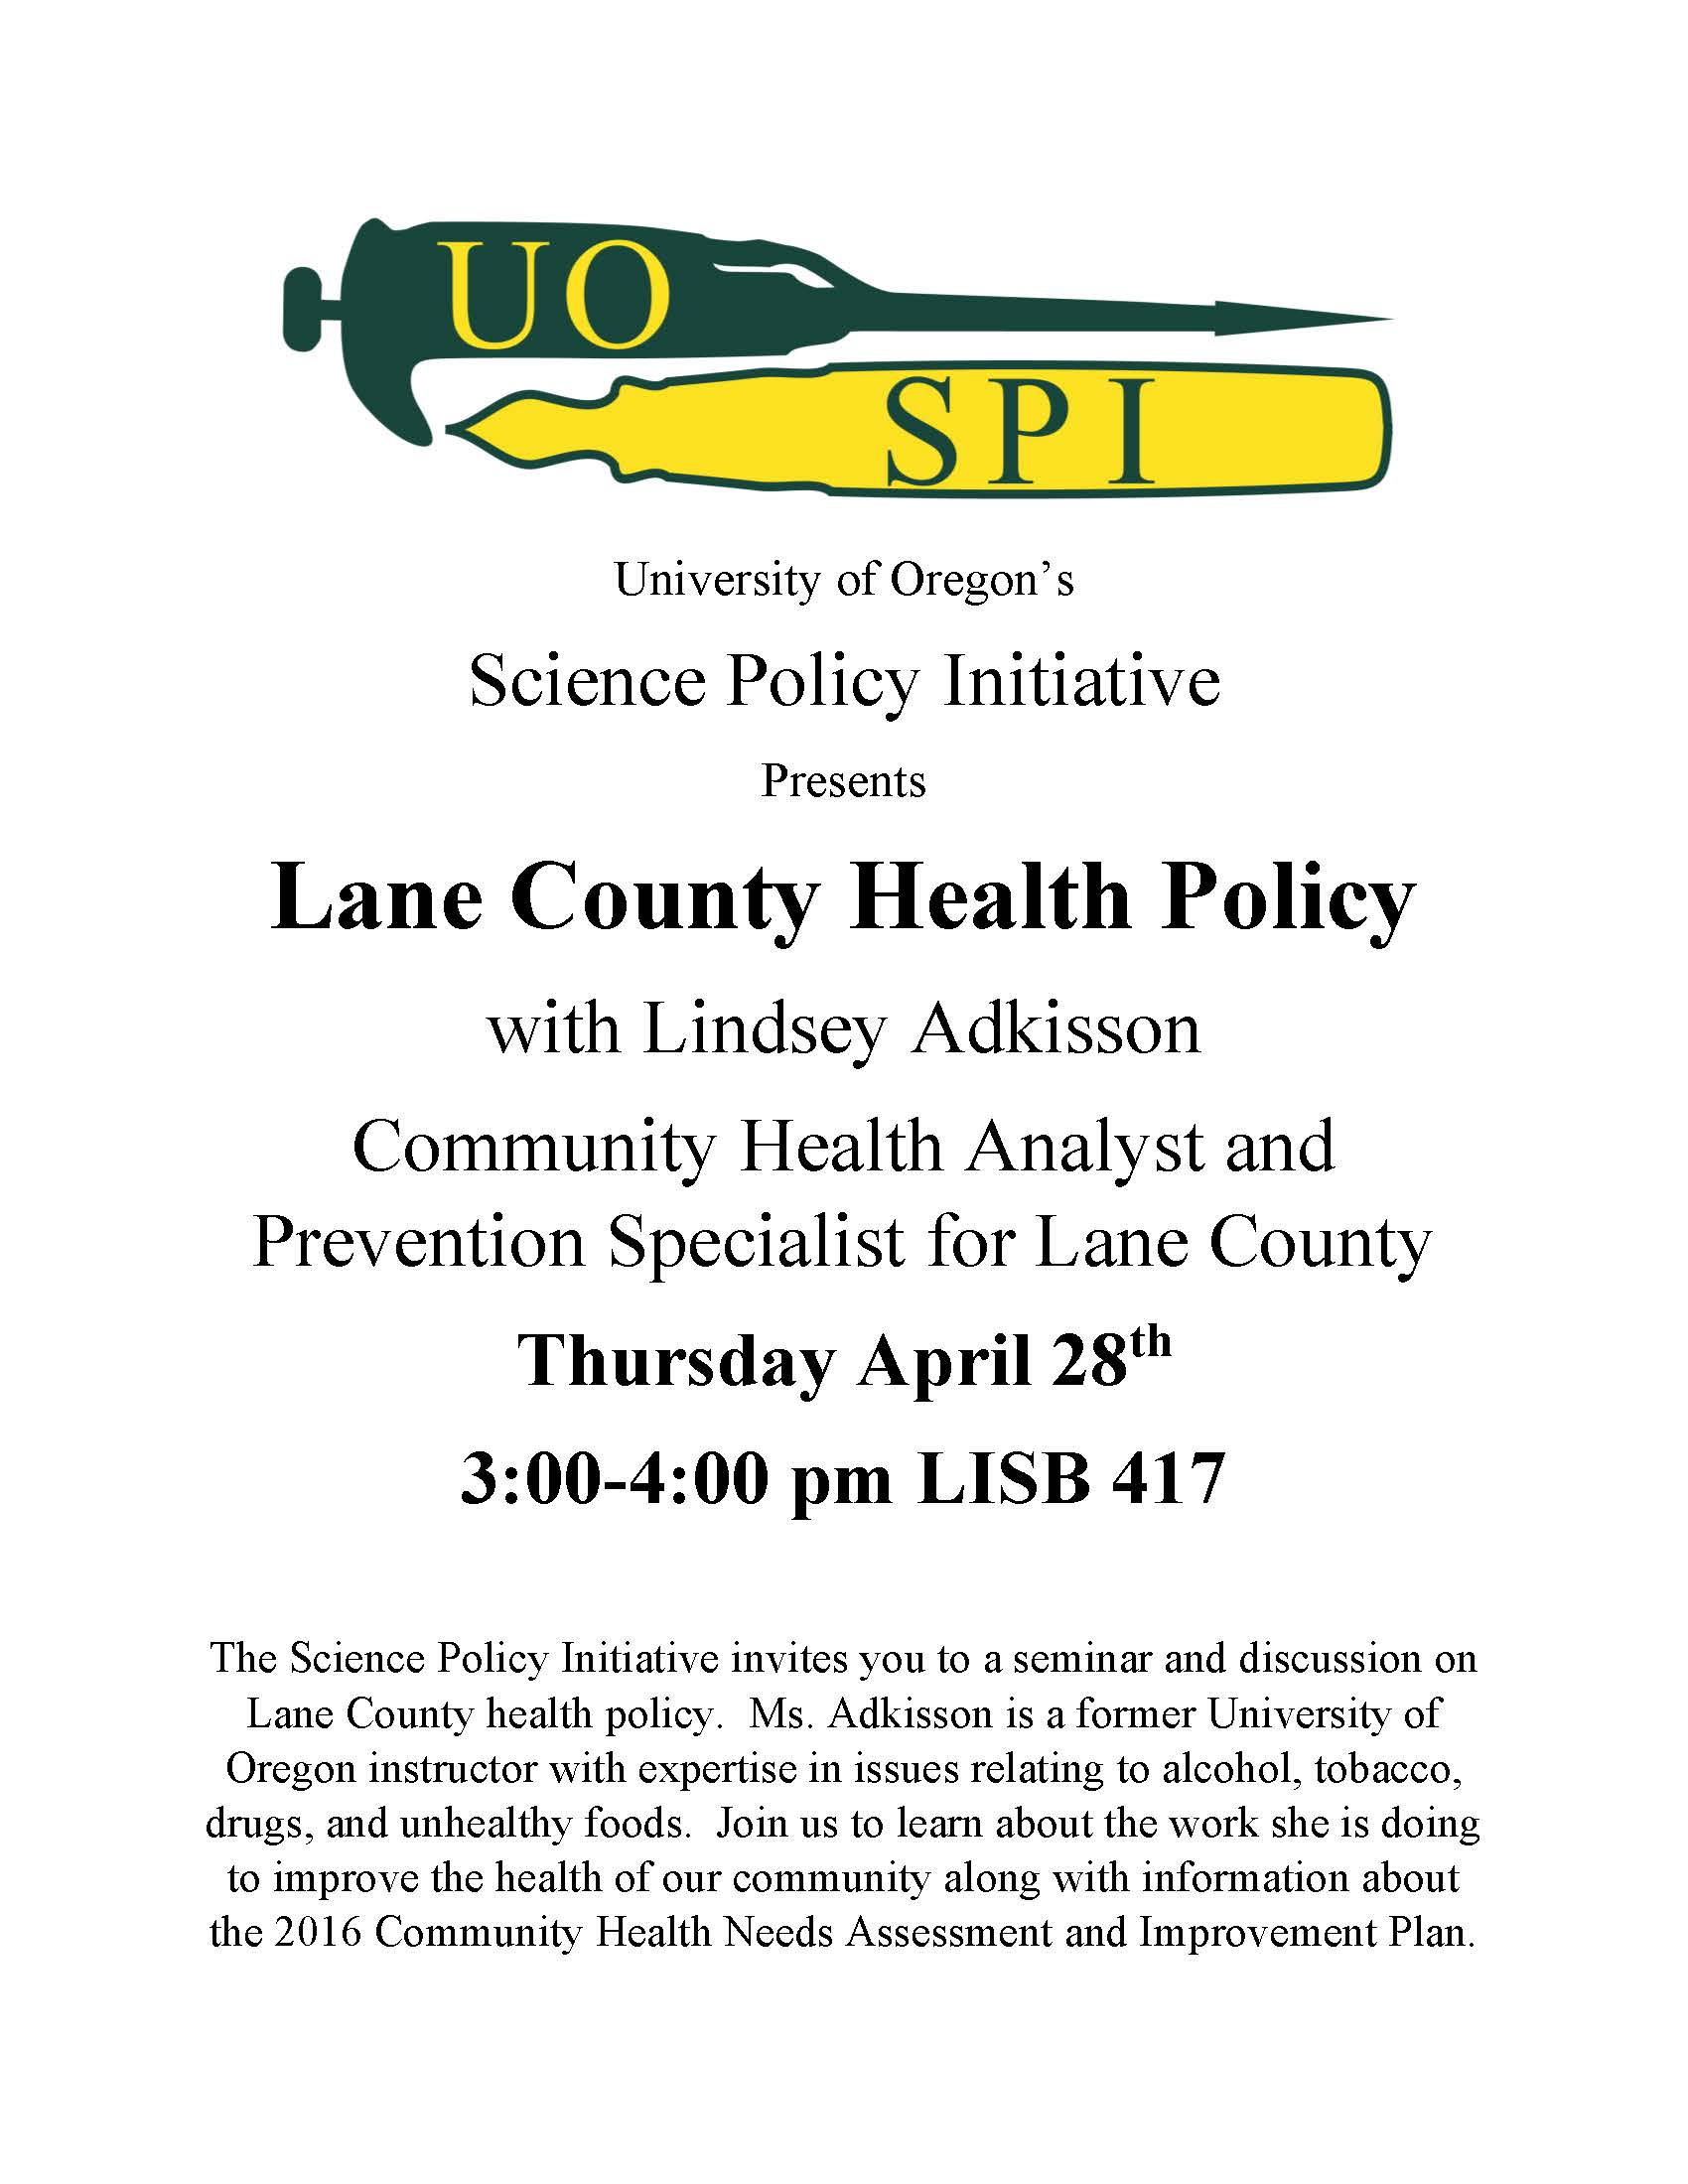 Lane County Health Policy Event Flyer